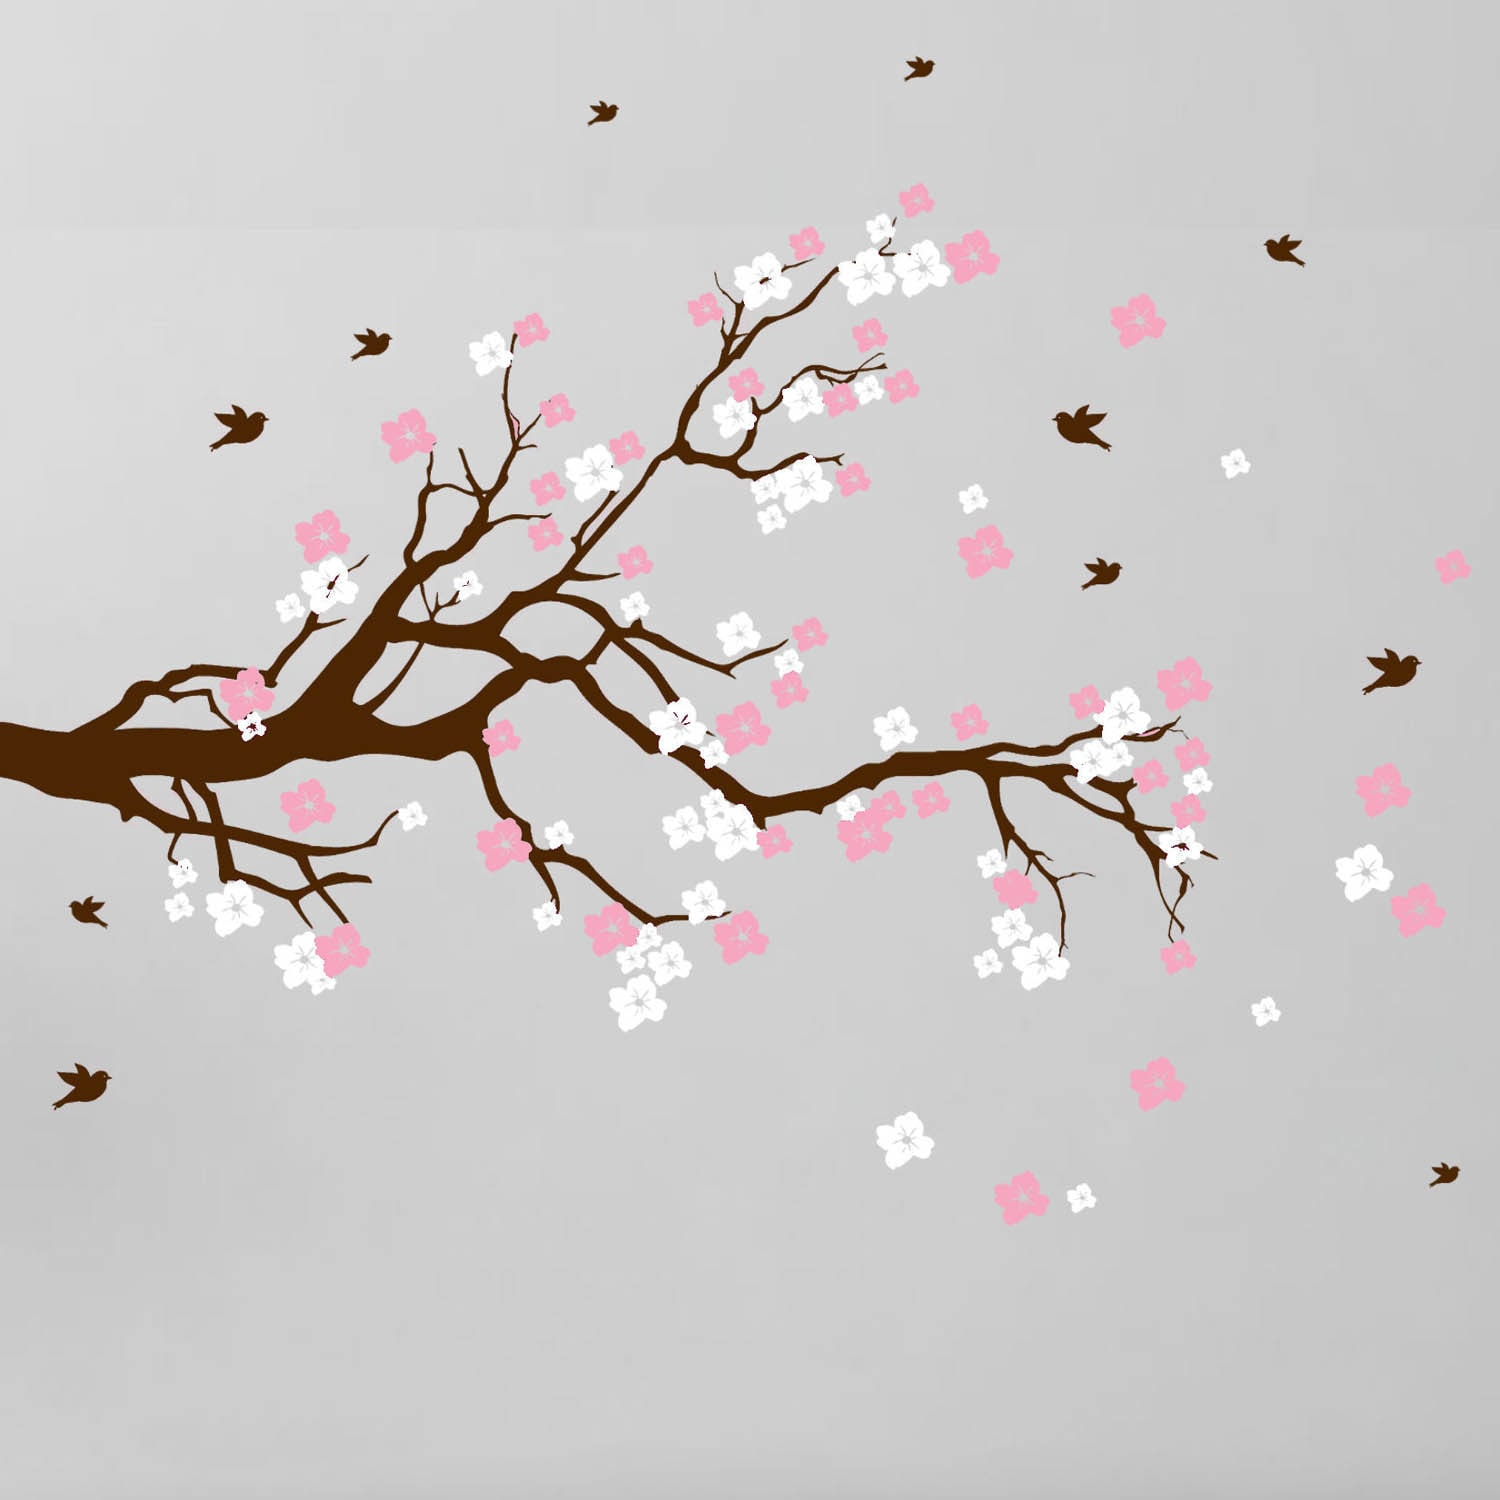 Shop Cherry Blossom Branch With Birds Vinyl Wall Art Decal On